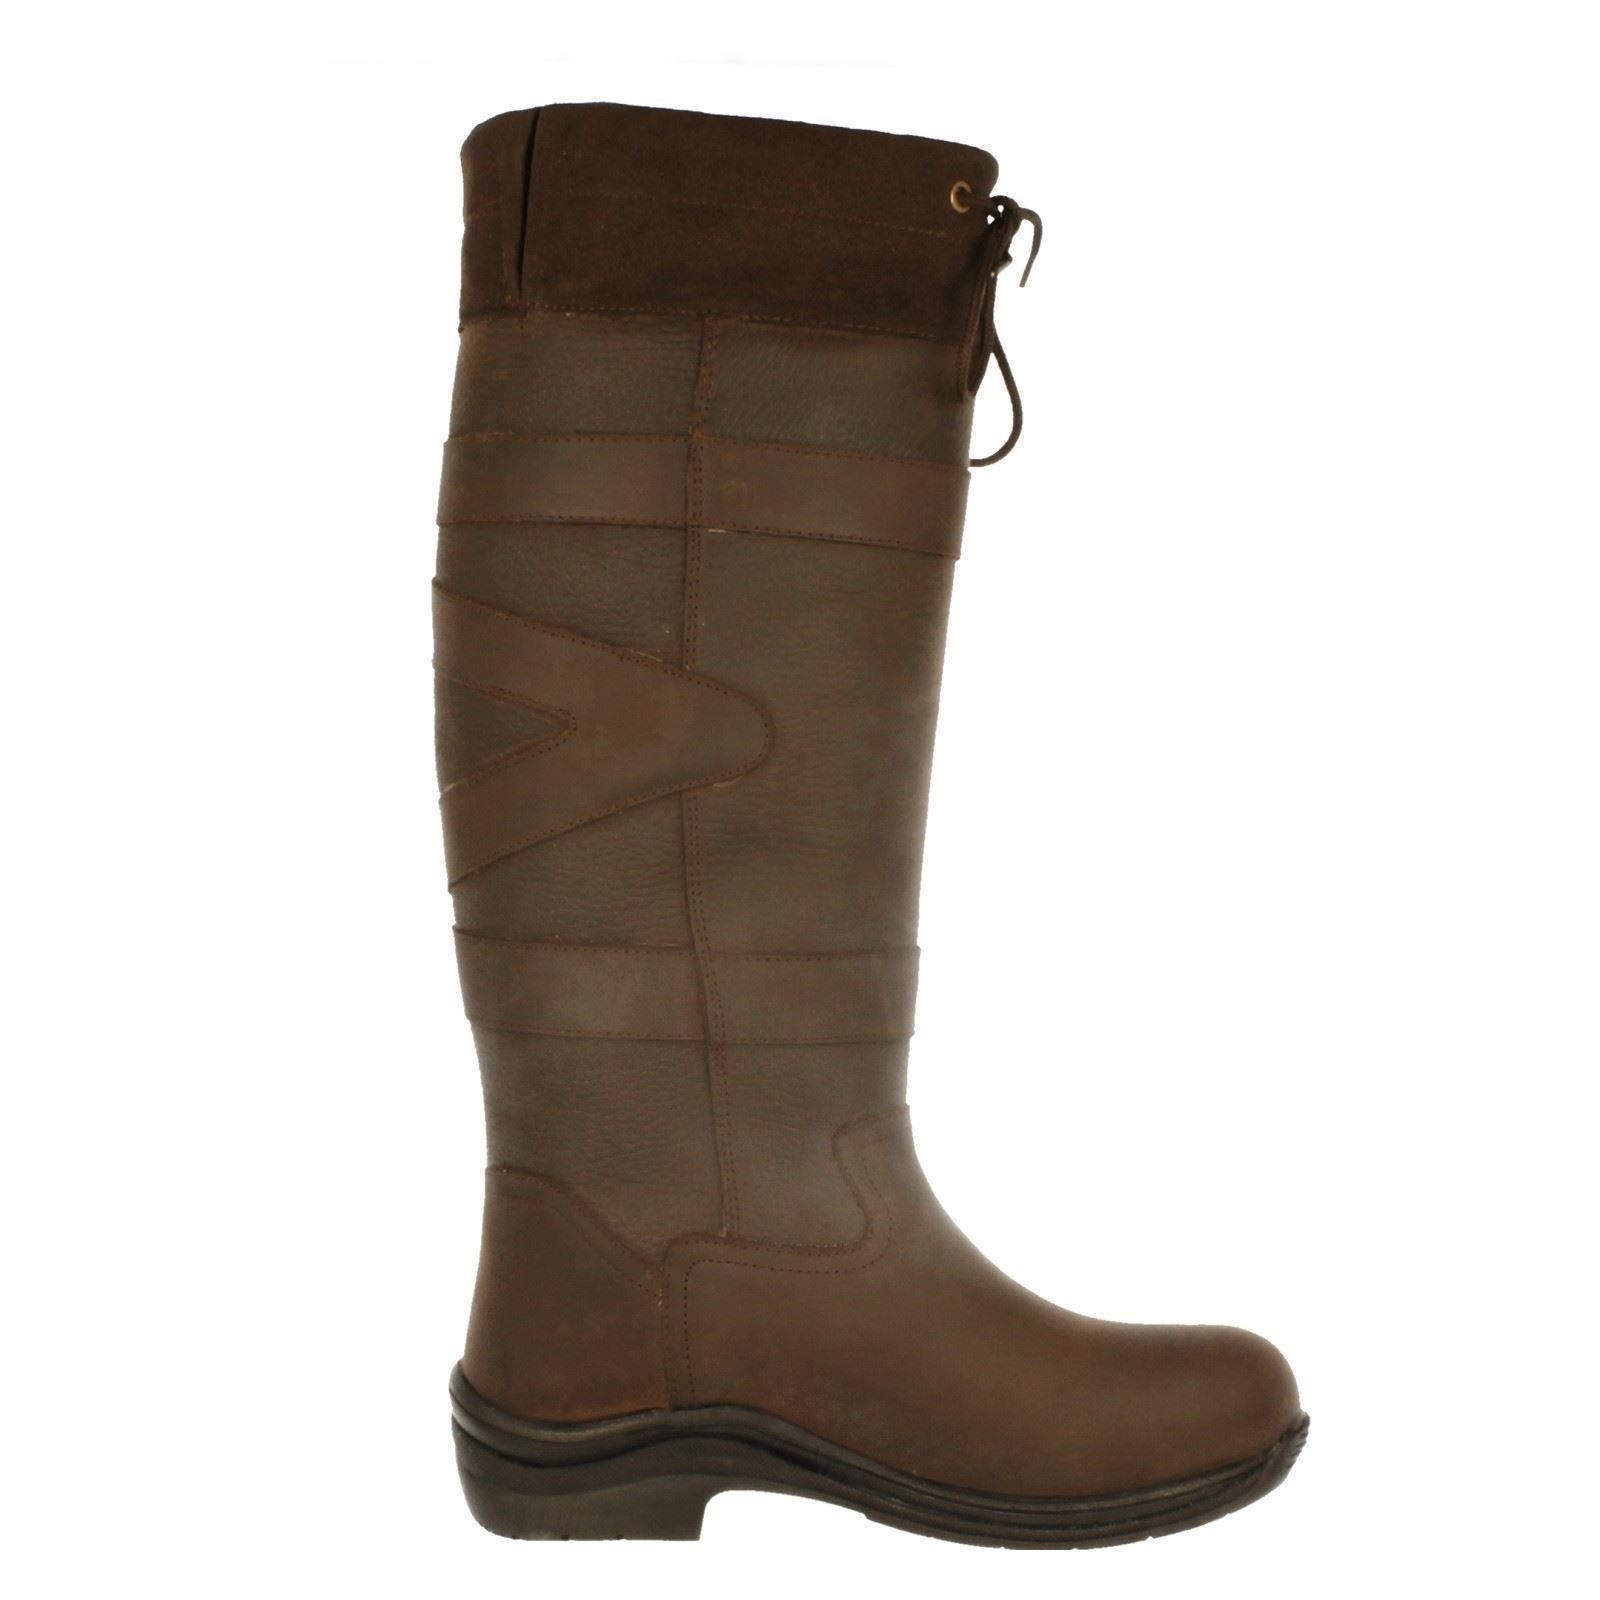 Unisex Unisex Unisex Toggi Water Proof Country Boot Style Canyon-W 99e0d3